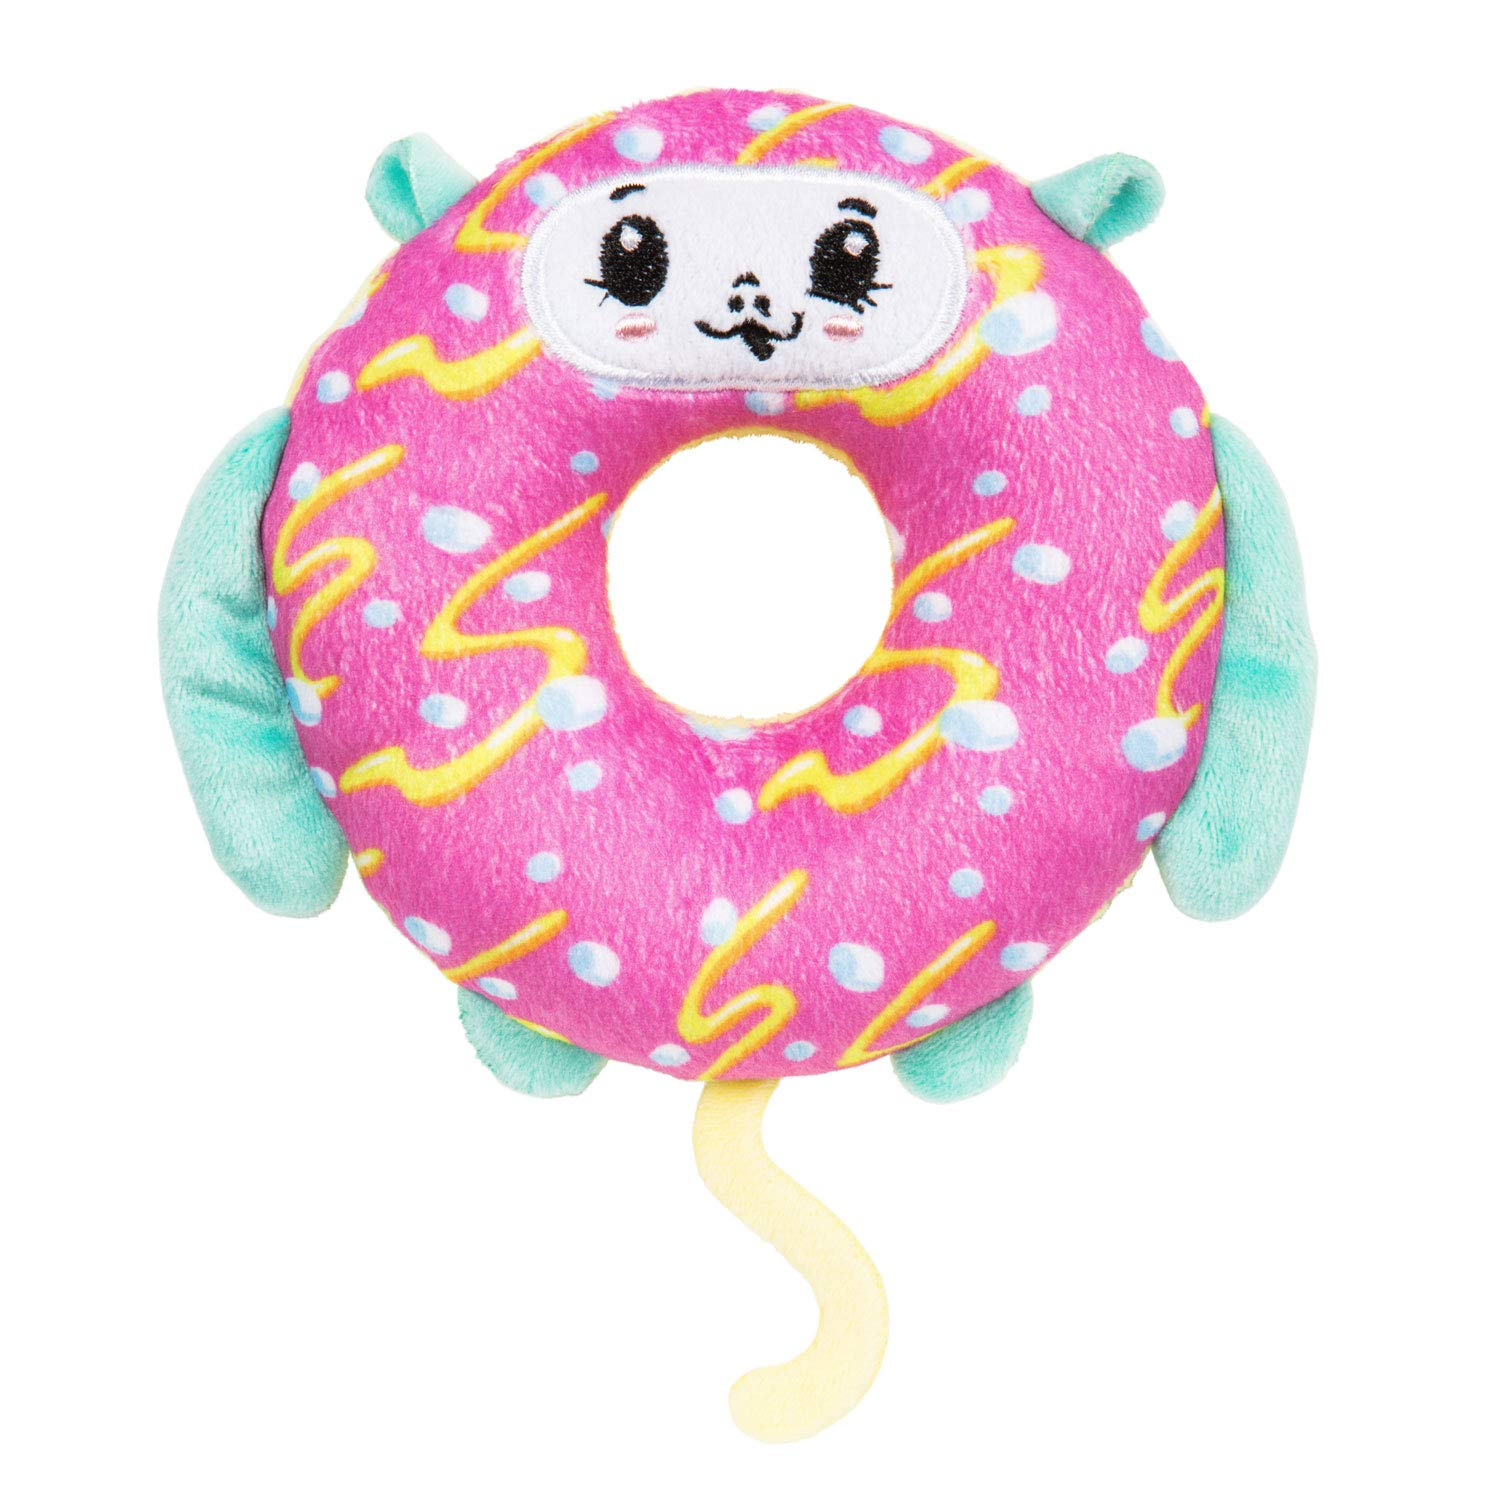 Pikmi Pops DoughMis Series Surprise Pack - 1pc Collectible Scented Medium Plush Toy in Medium Donut with Surprises